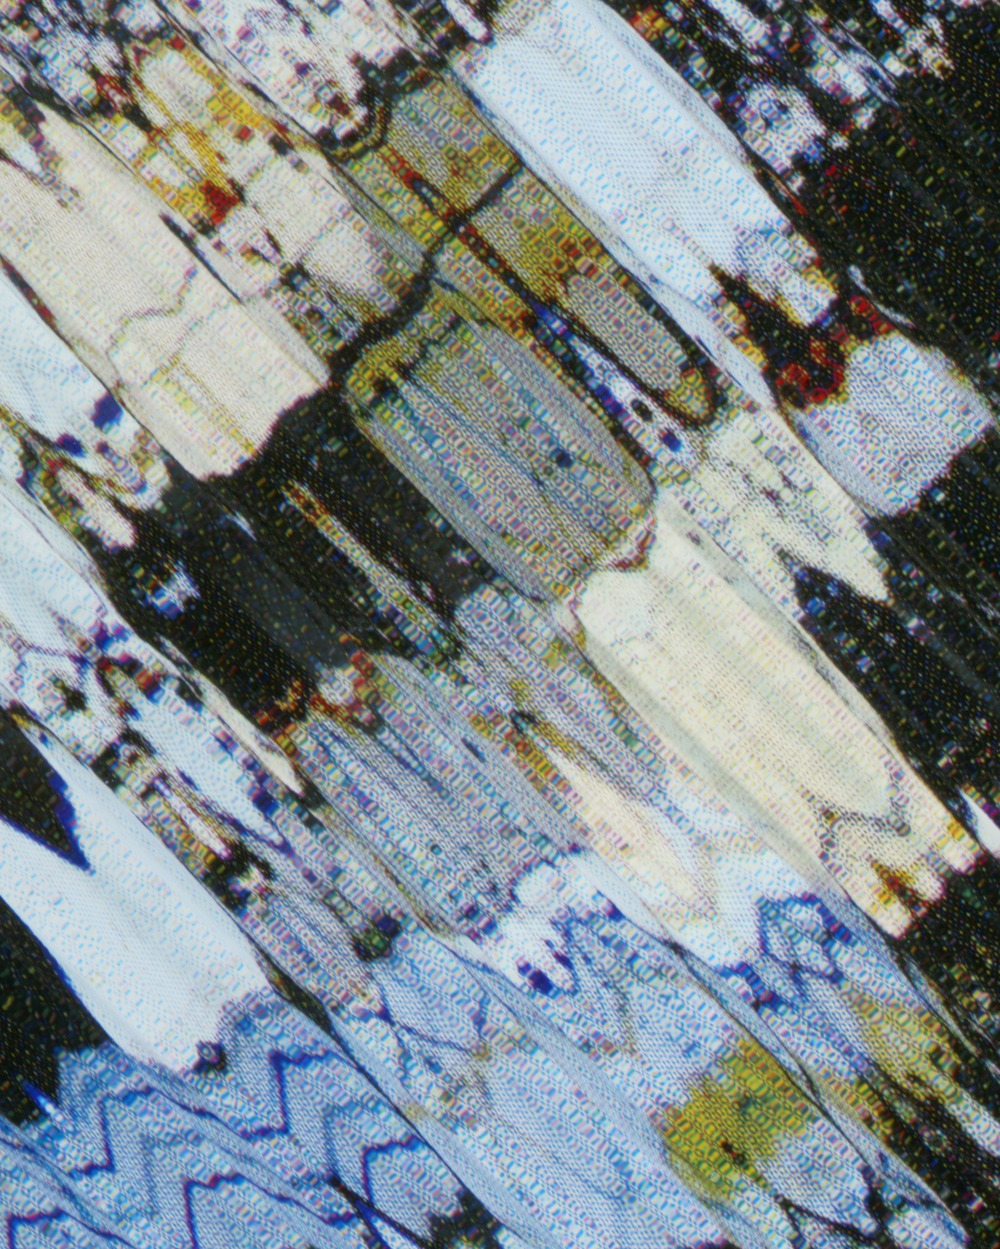 0445_B Prism Scan II (Cross Polarized Mesosiderite) (detail)-Tauba-Auerbach-large